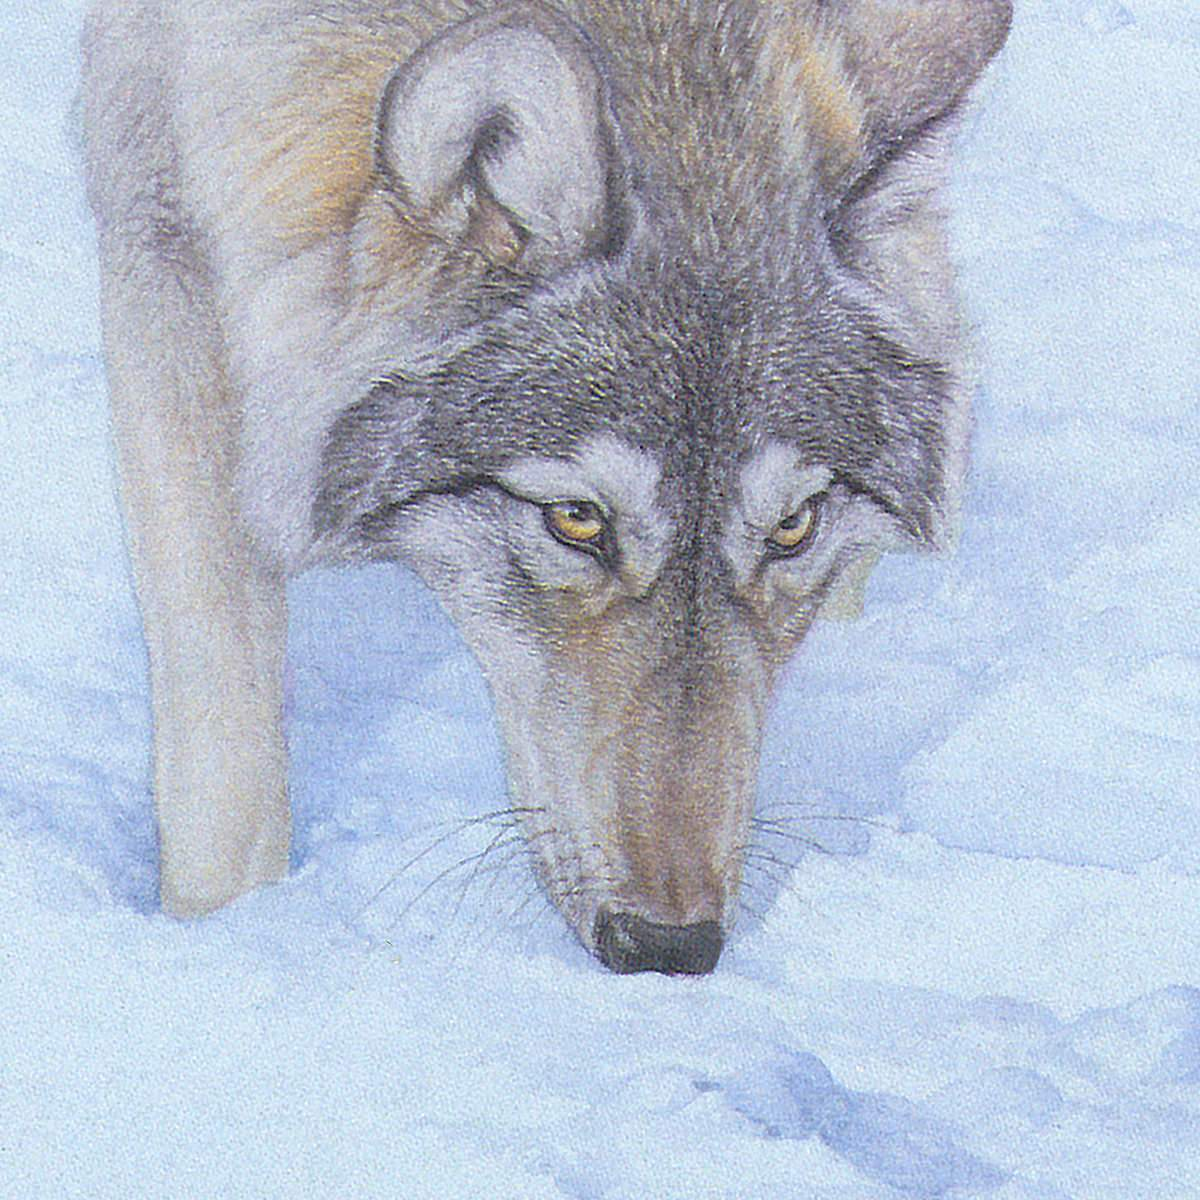 Tracking The Scent - Art Print by Glen Loates from the Glen Loates Store